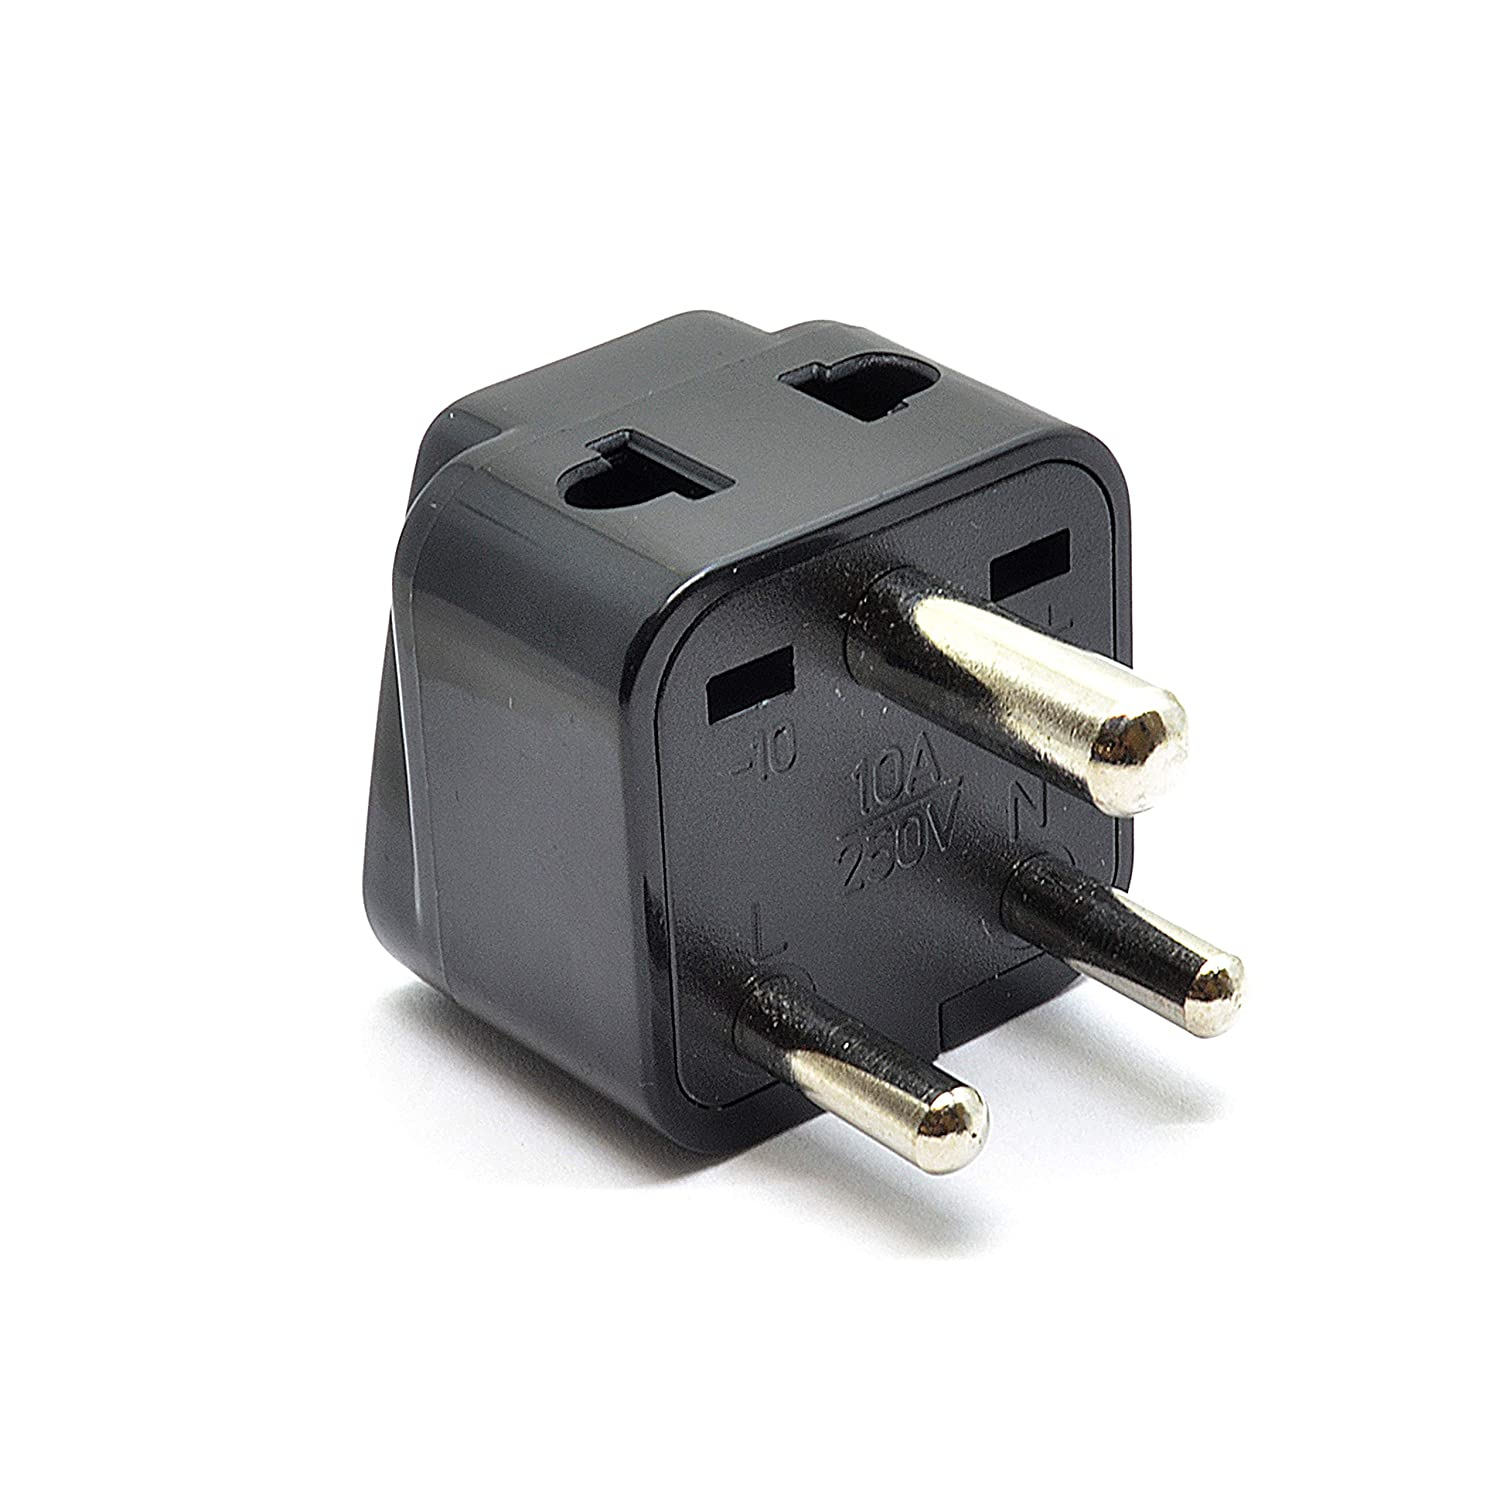 Orei 2 In 1 Usa To India Adapter Plug Type D 4 Pack Electrical Outlet Installation Atlanta Install Outlets Black Home Audio Theater